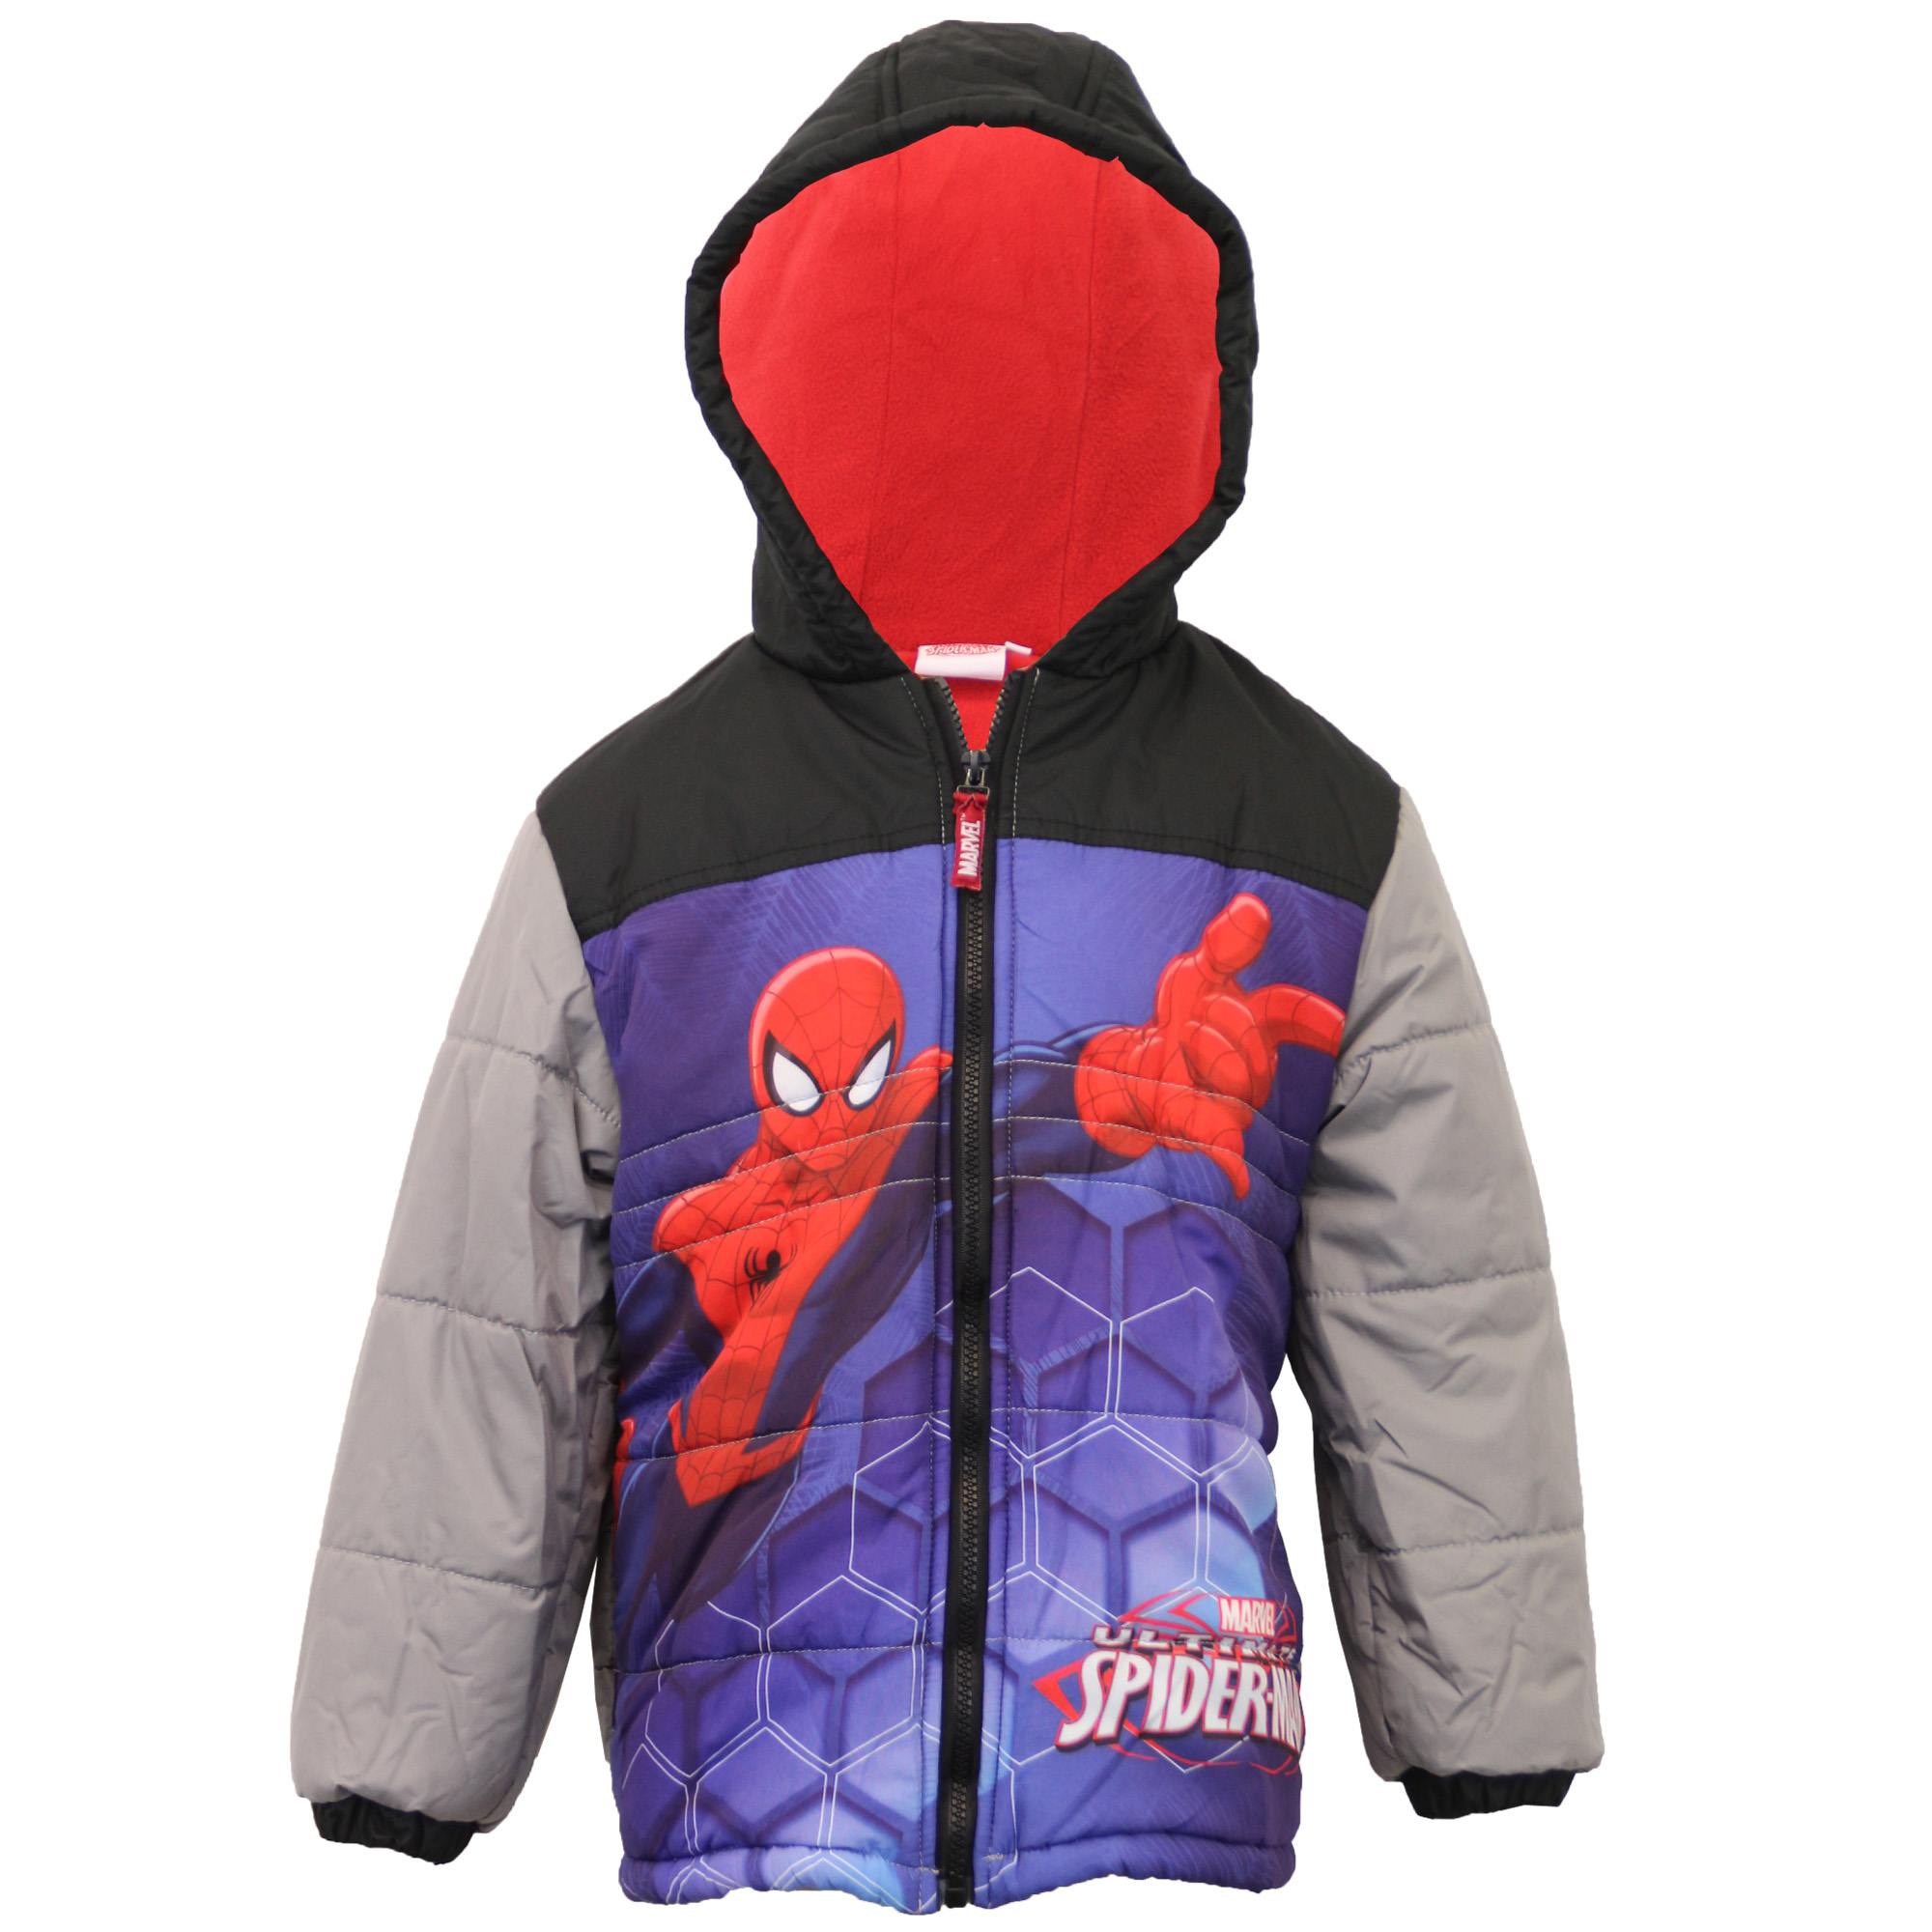 Kids Size ALL Children Character JH Design Jackets search by ALL, Embroidered jackets from the warehouses of magyc.cf, Use the sort by size for best user experience, The quality you expect at a price you will love.